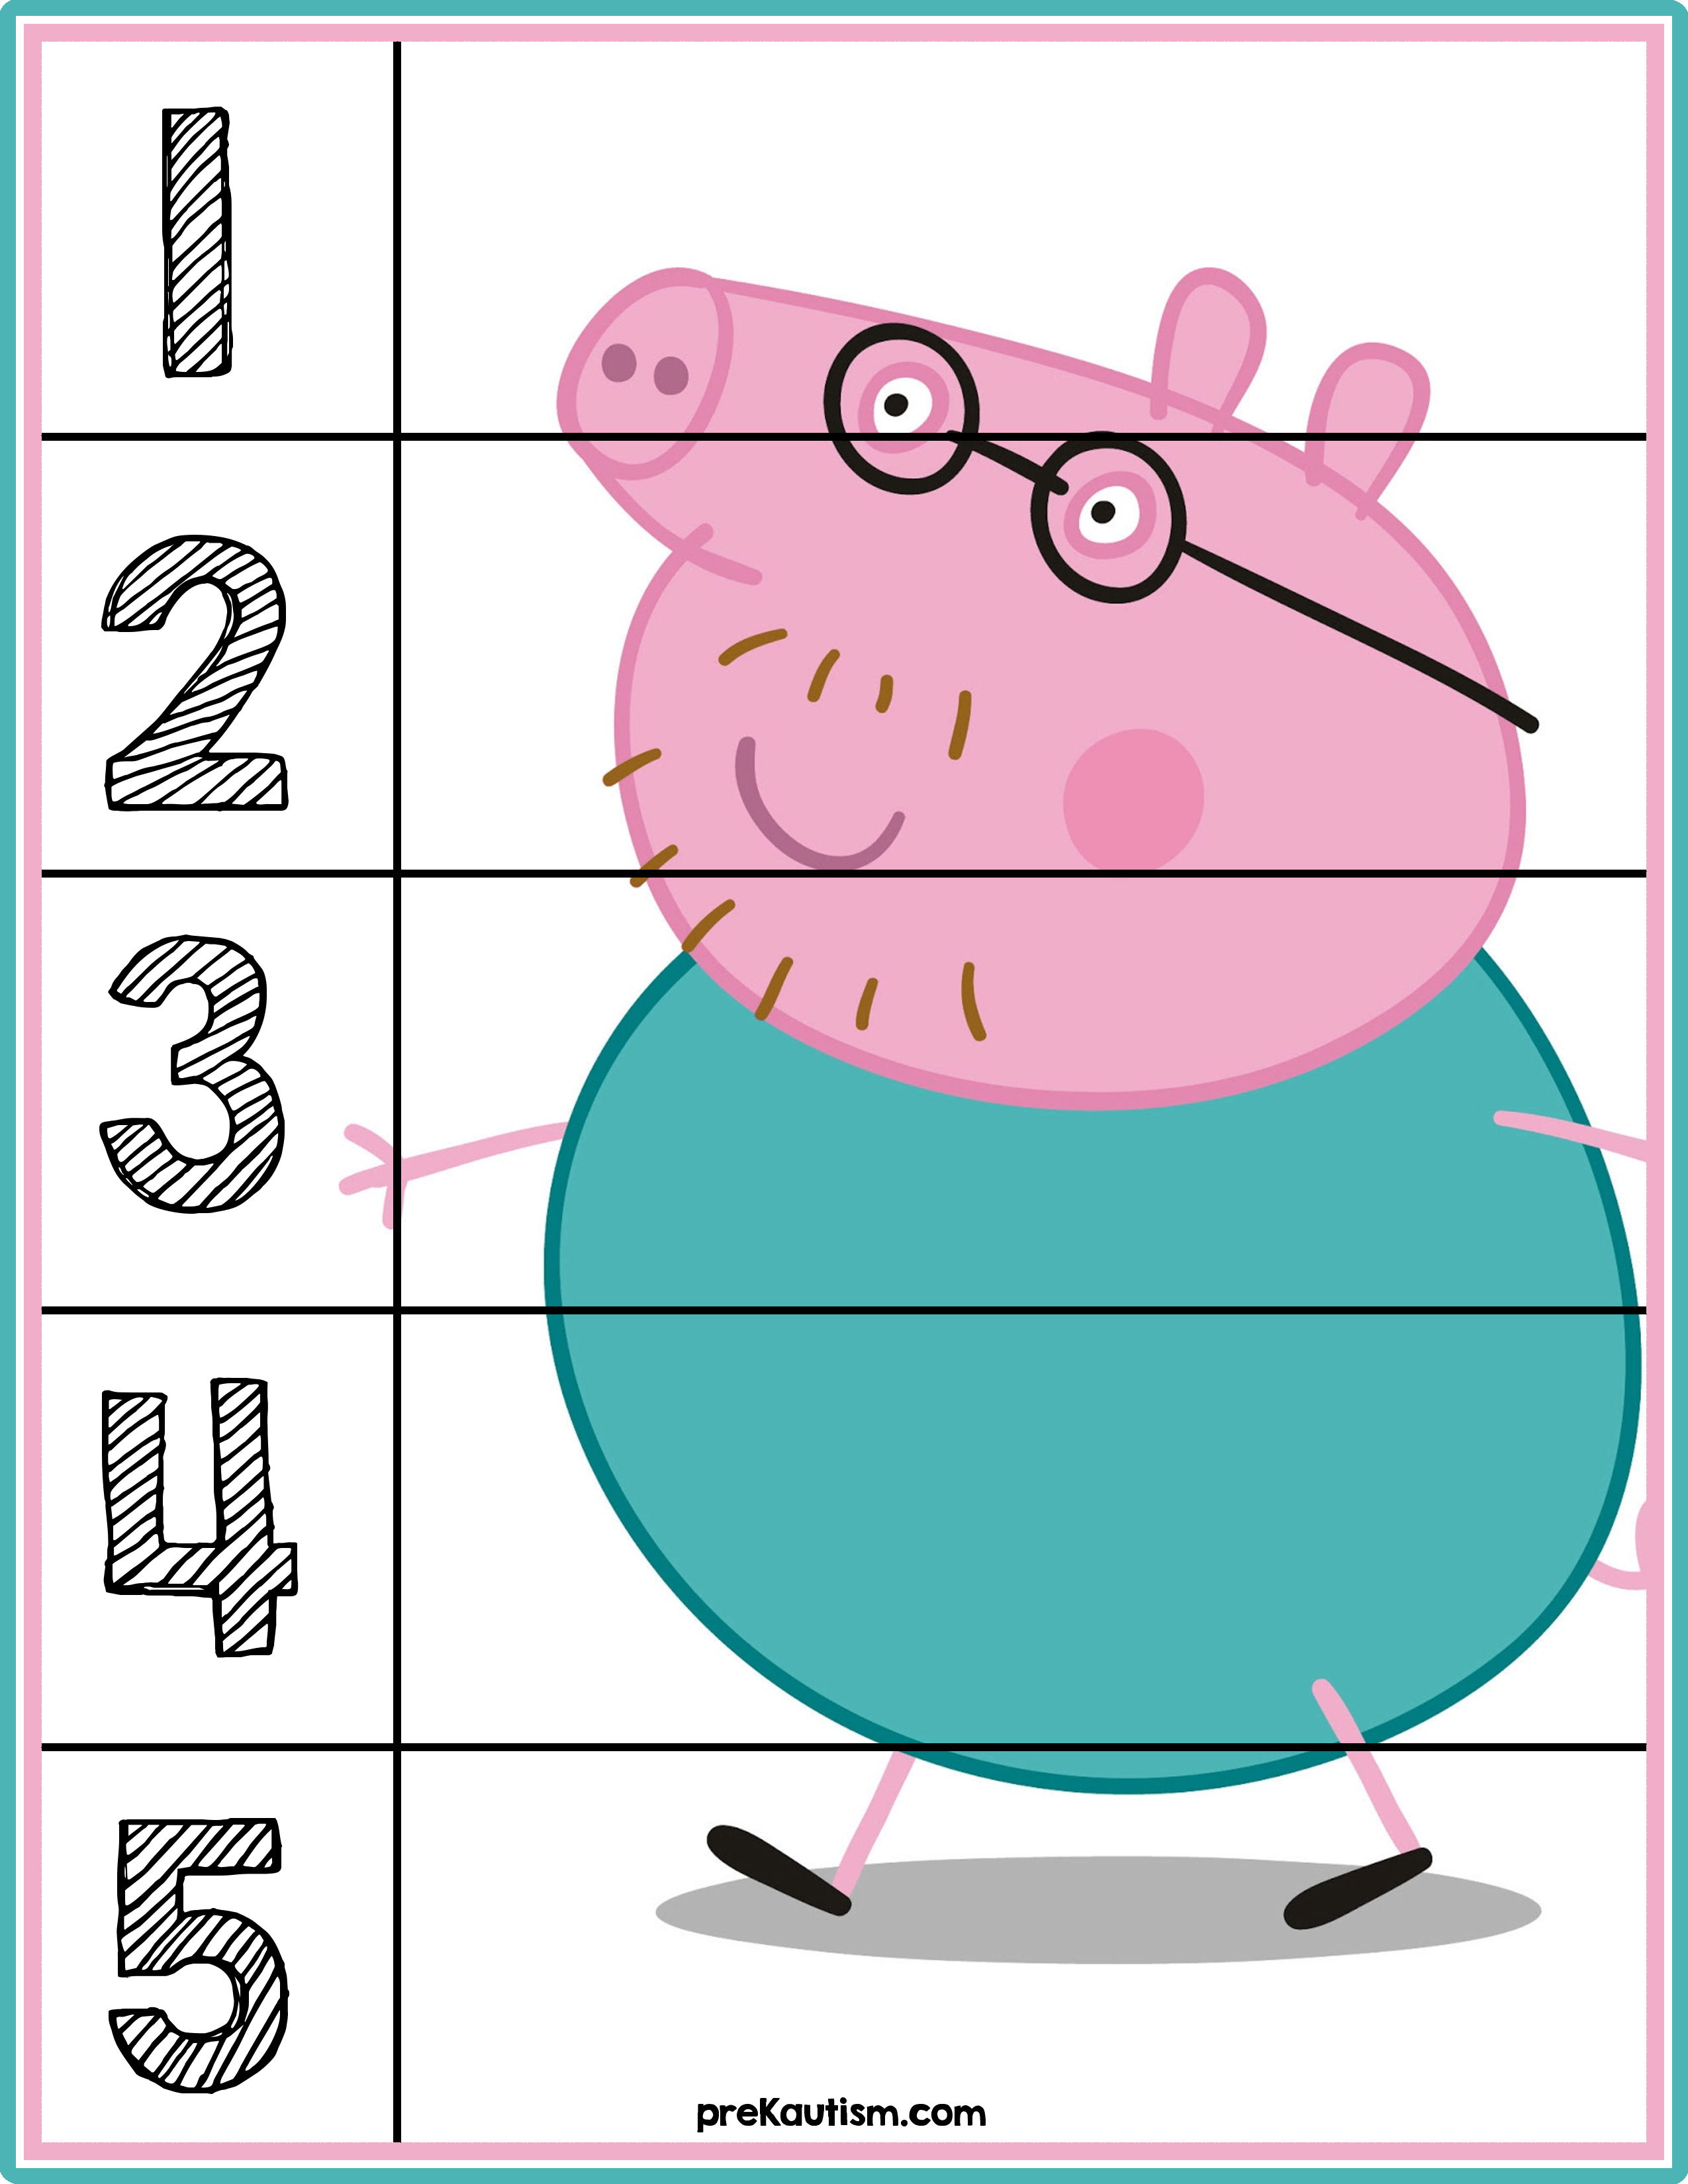 Peppa Pig Number Puzzles #'s 1-5   Autism Activities For Ages 3-5 - Printable Puzzles For Preschoolers